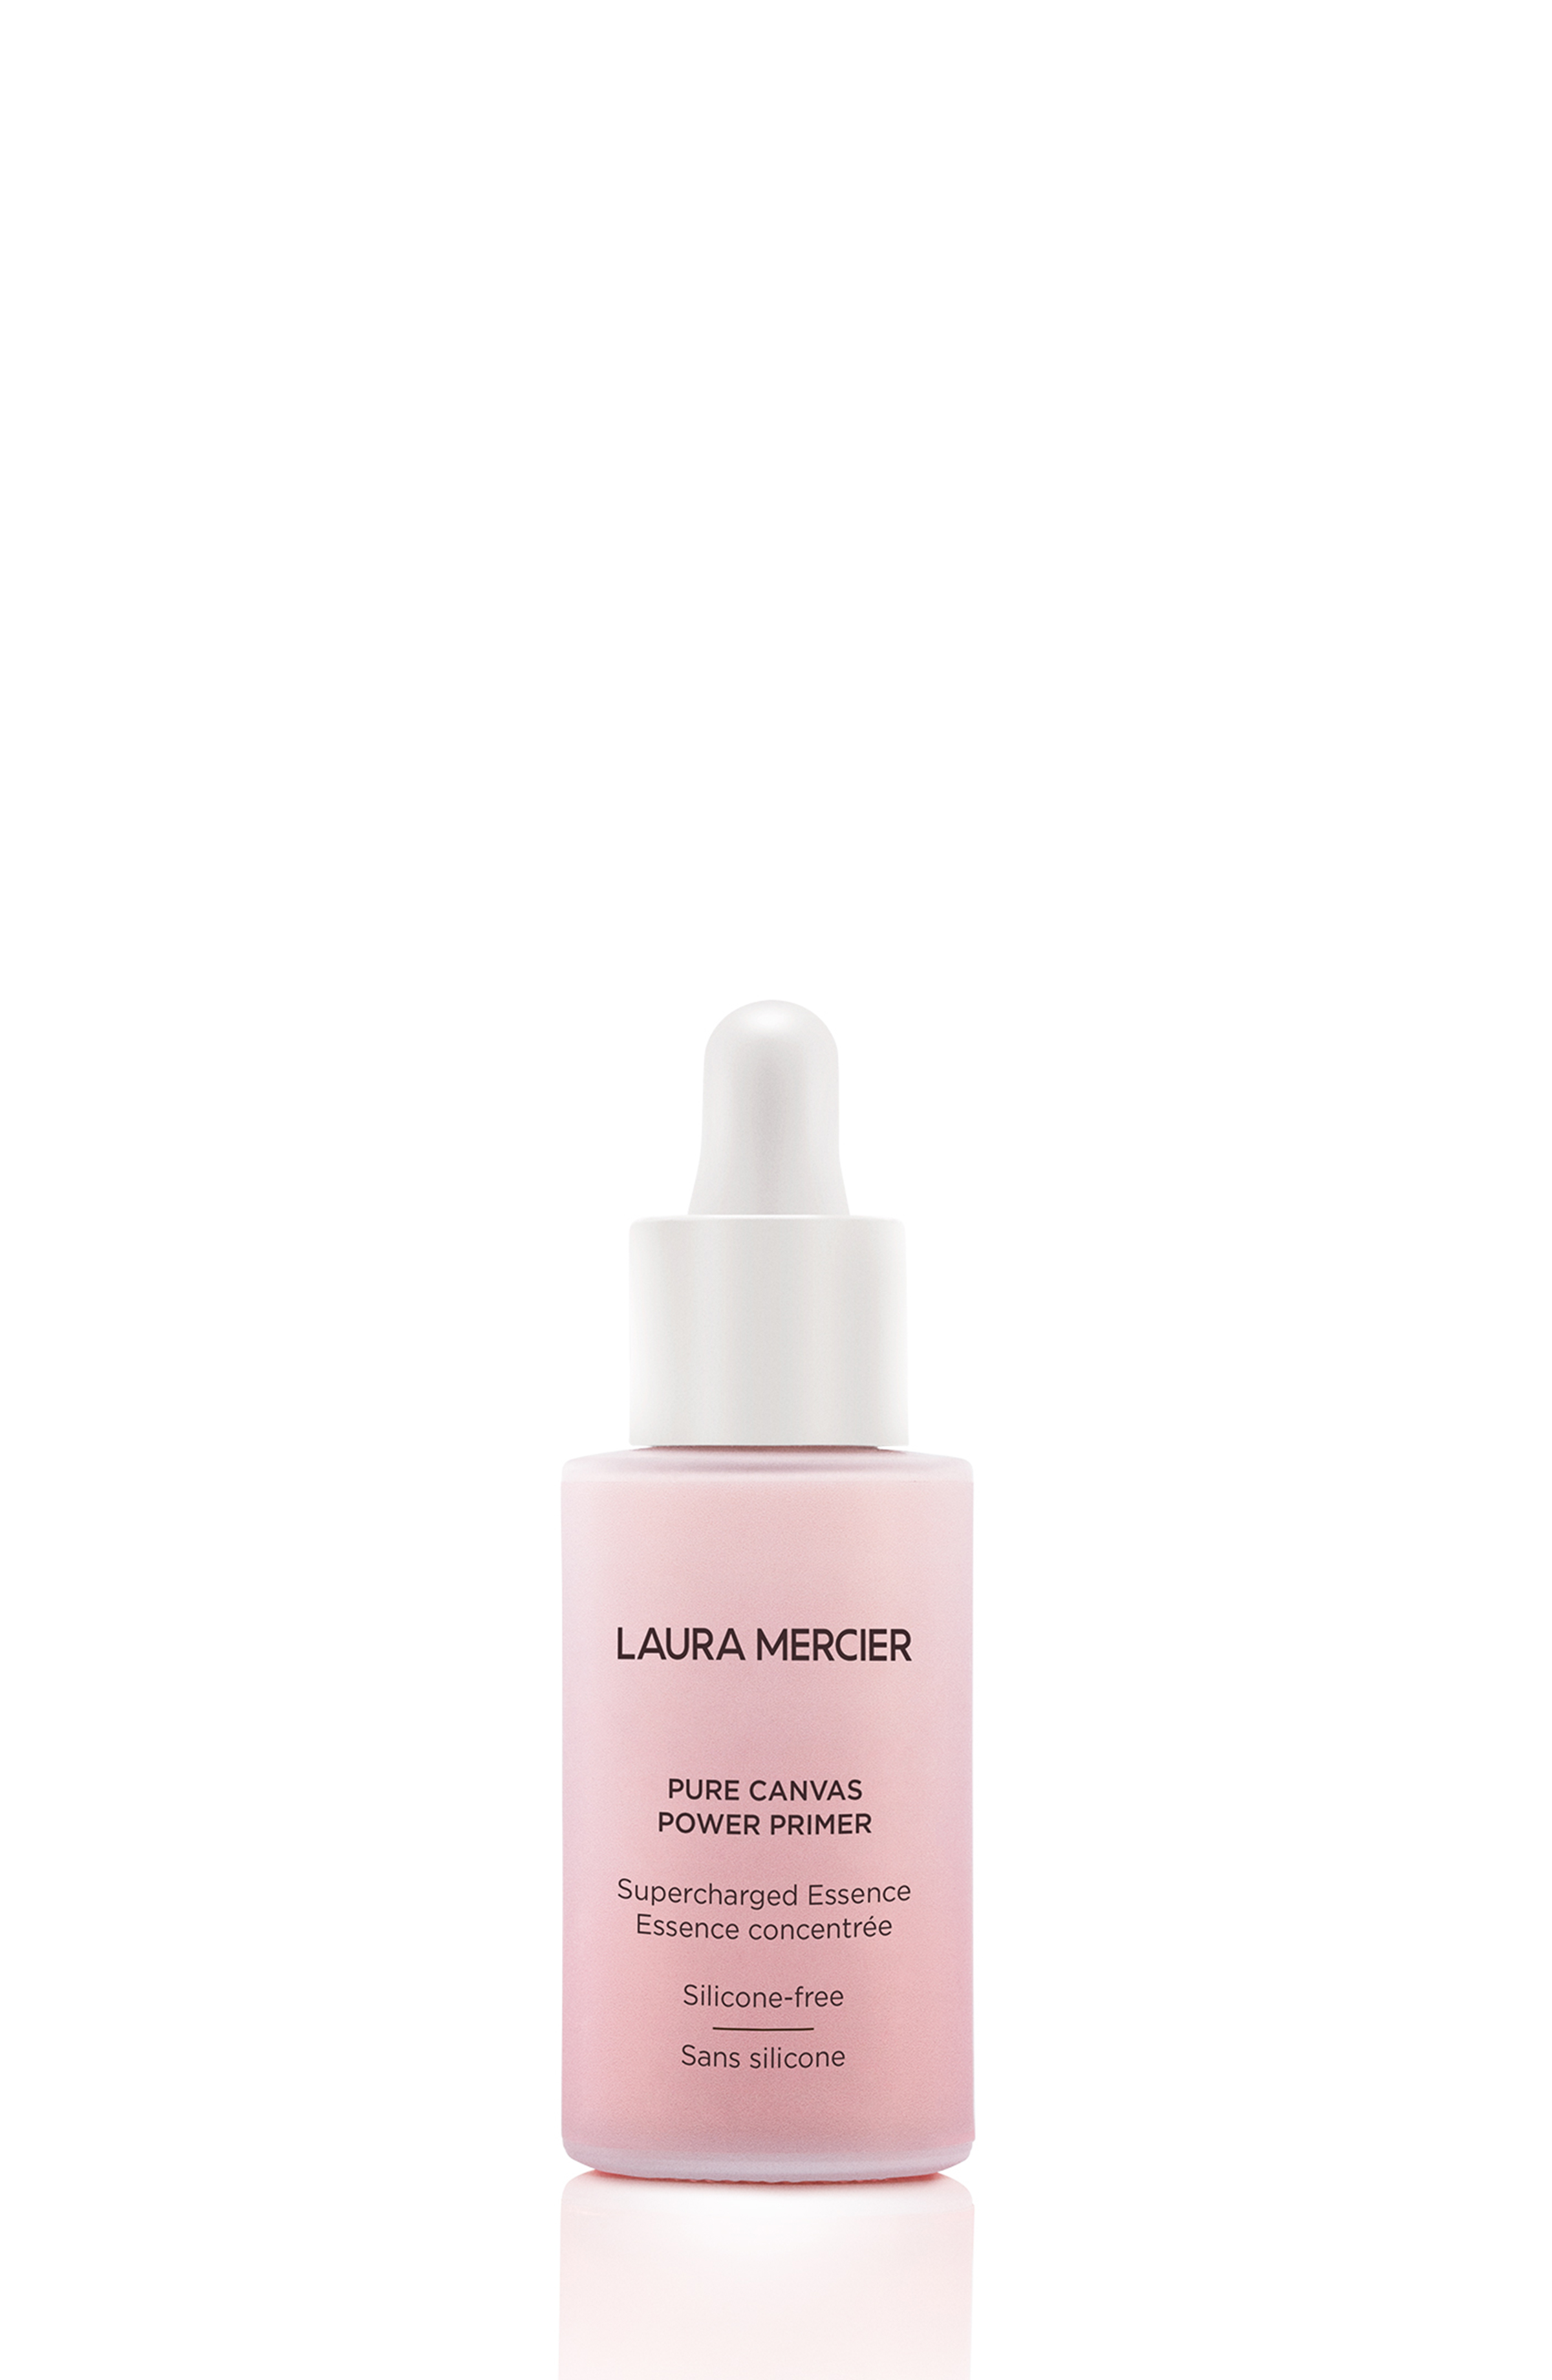 Pure Canvas Power Primer Supercharged Essence